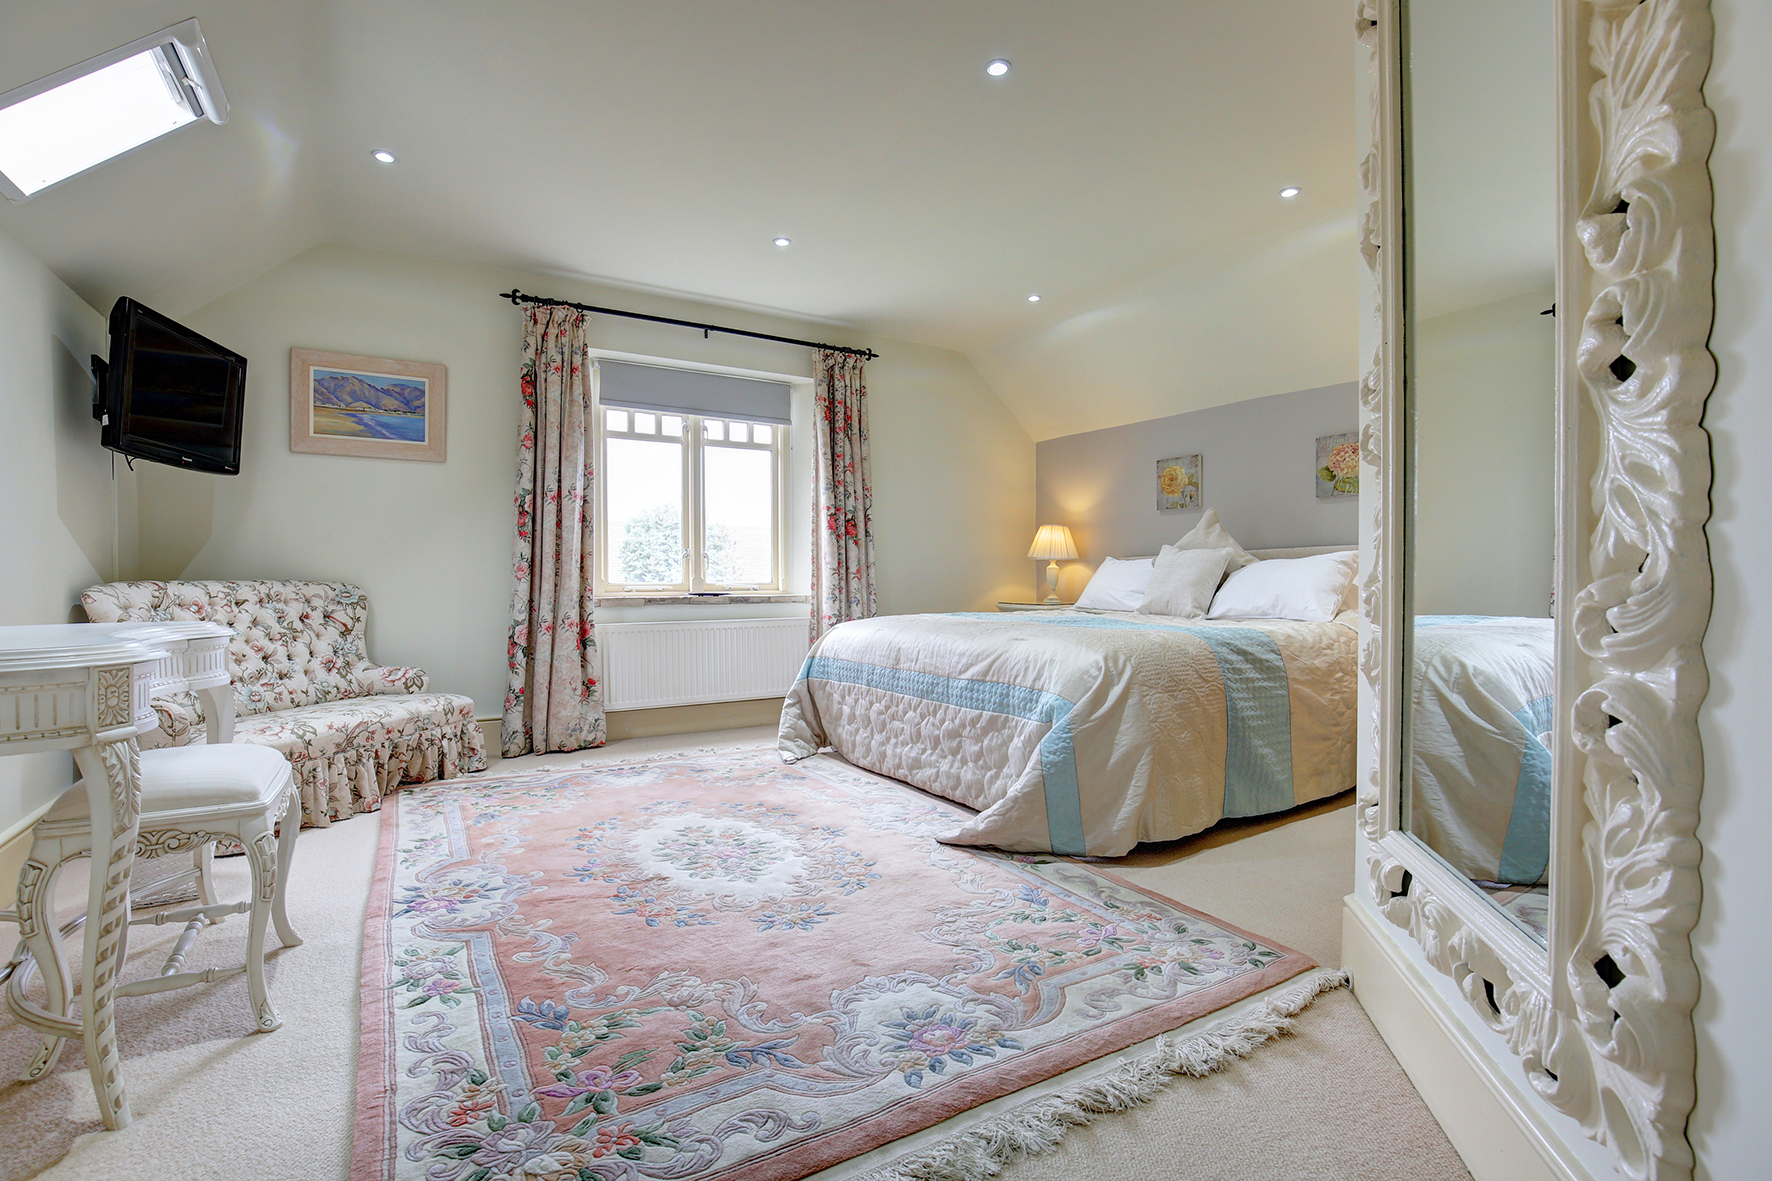 The Gables - Double Room 1